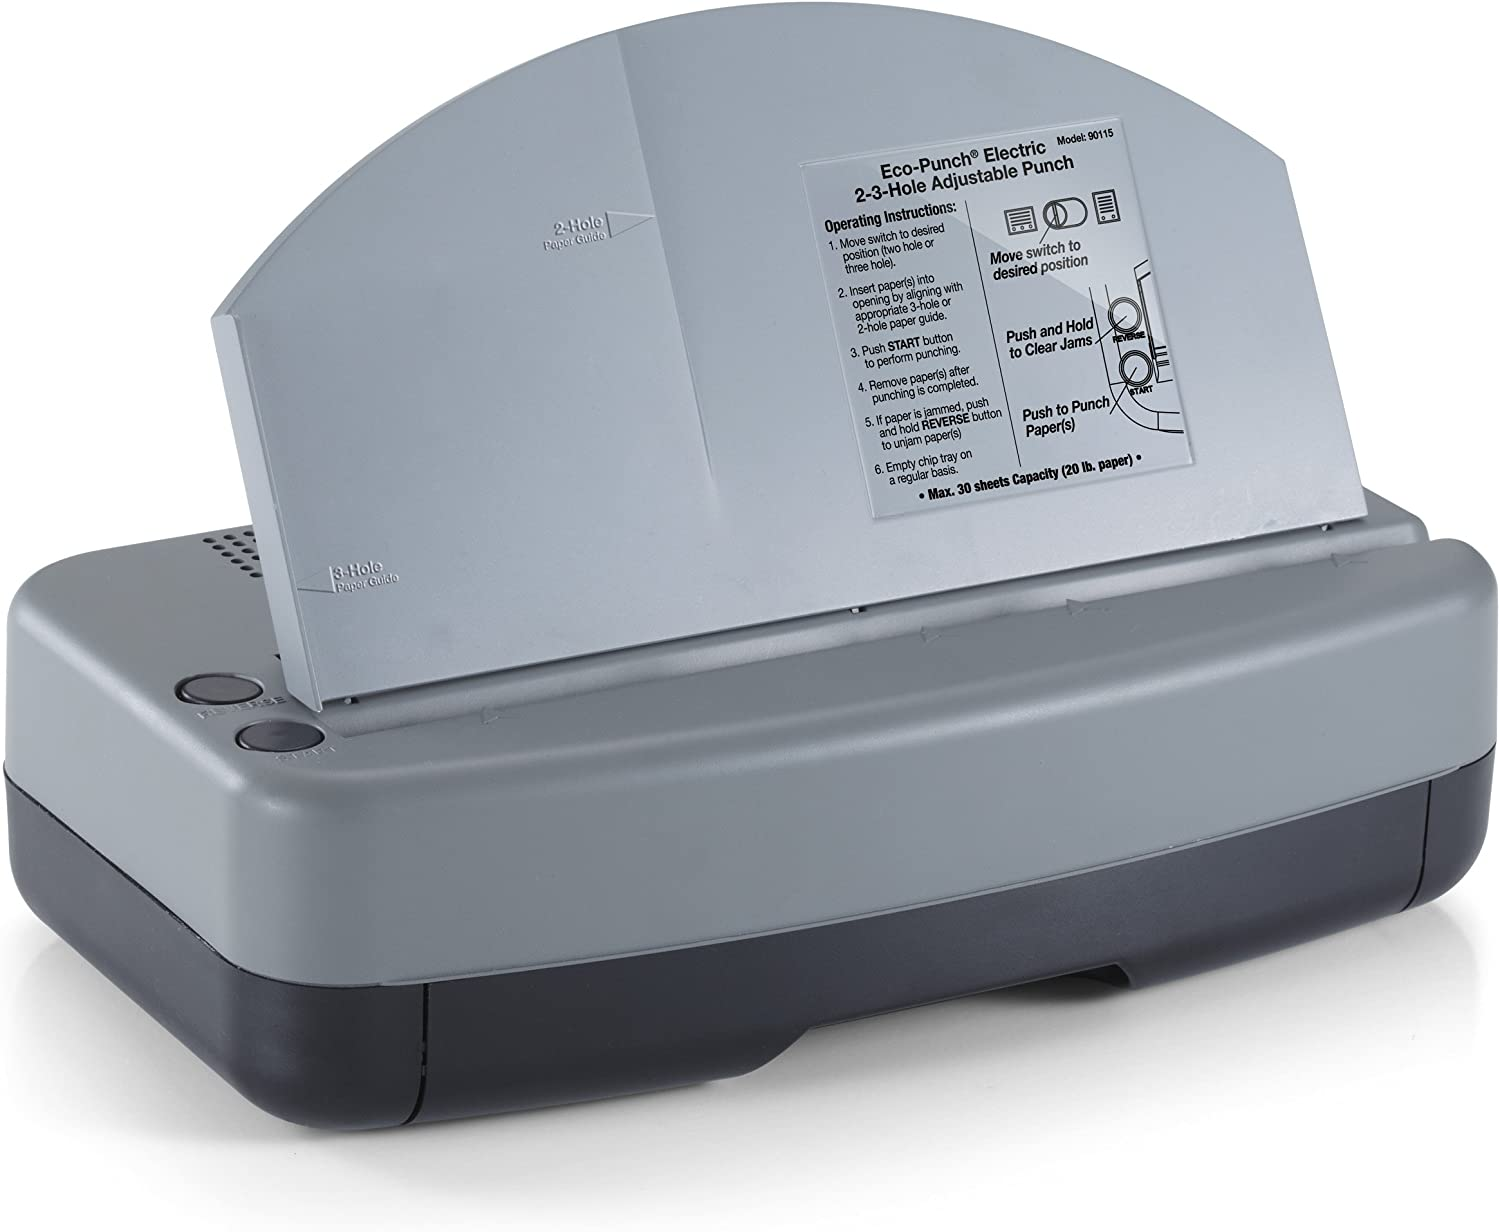 Swingline Commercial Electric 3 Hole Punch 28 Sheets 74535 - 5050574535 8.5 Centers